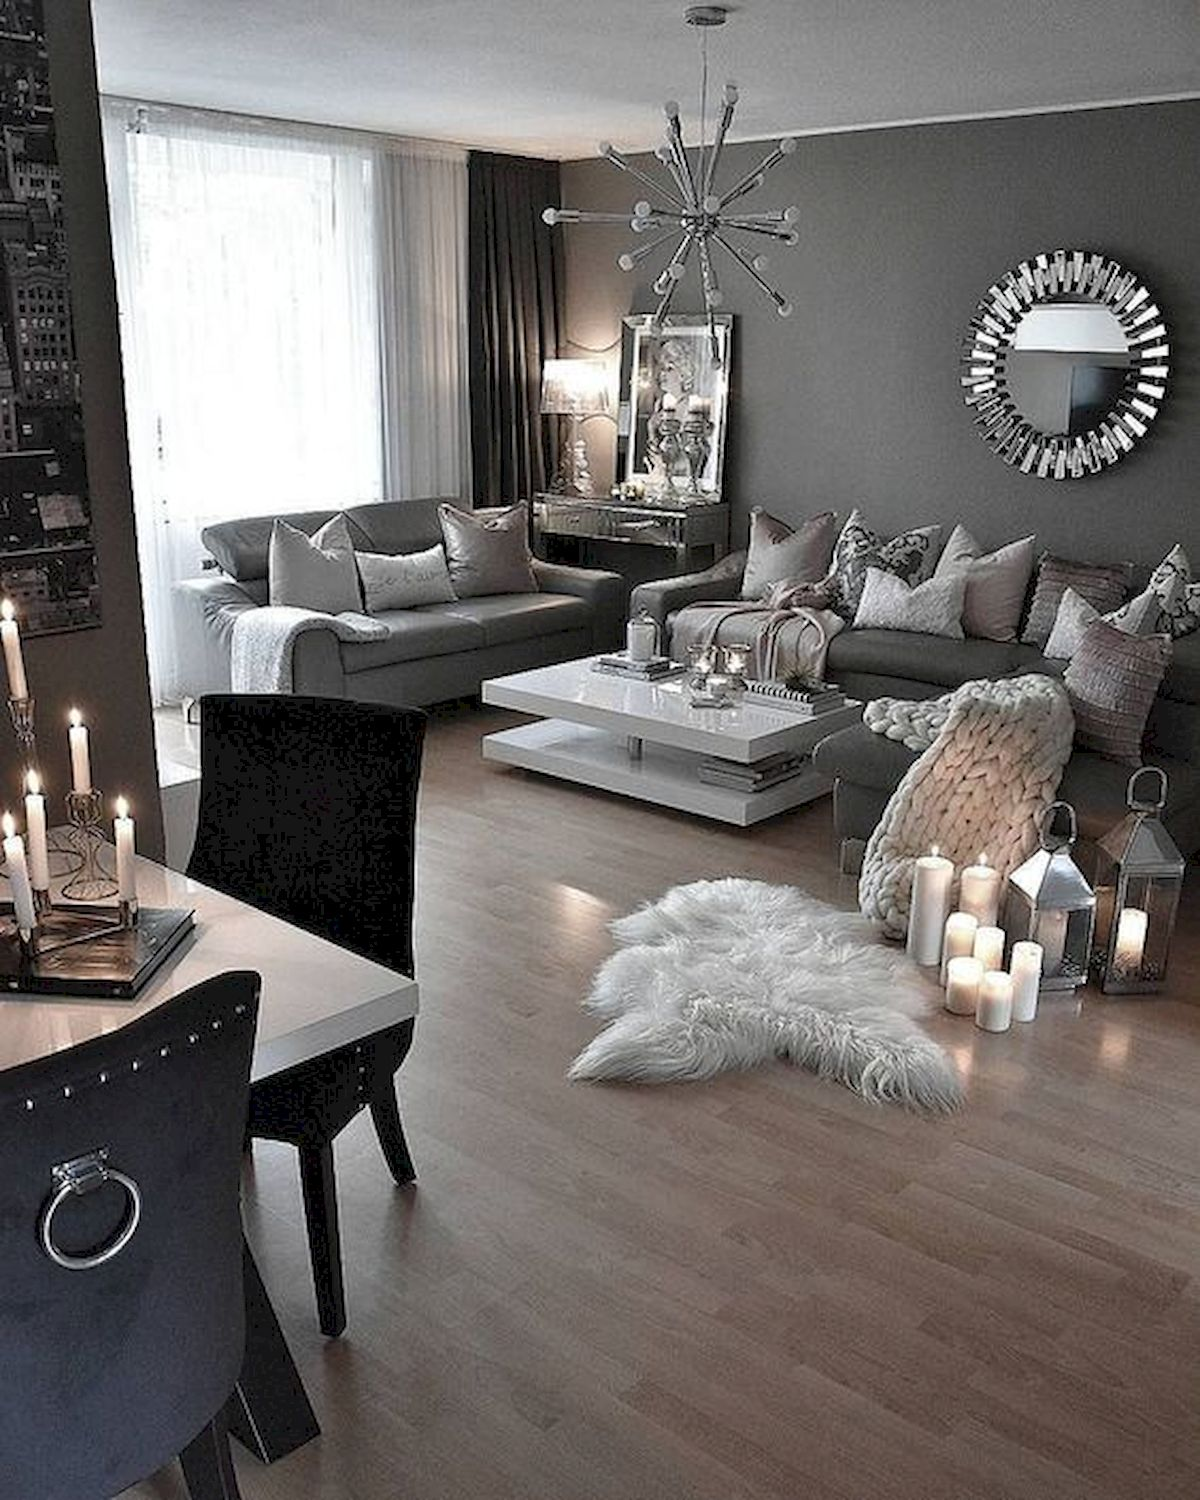 50 Gorgeous Living Room Decor and Design Ideas (48)